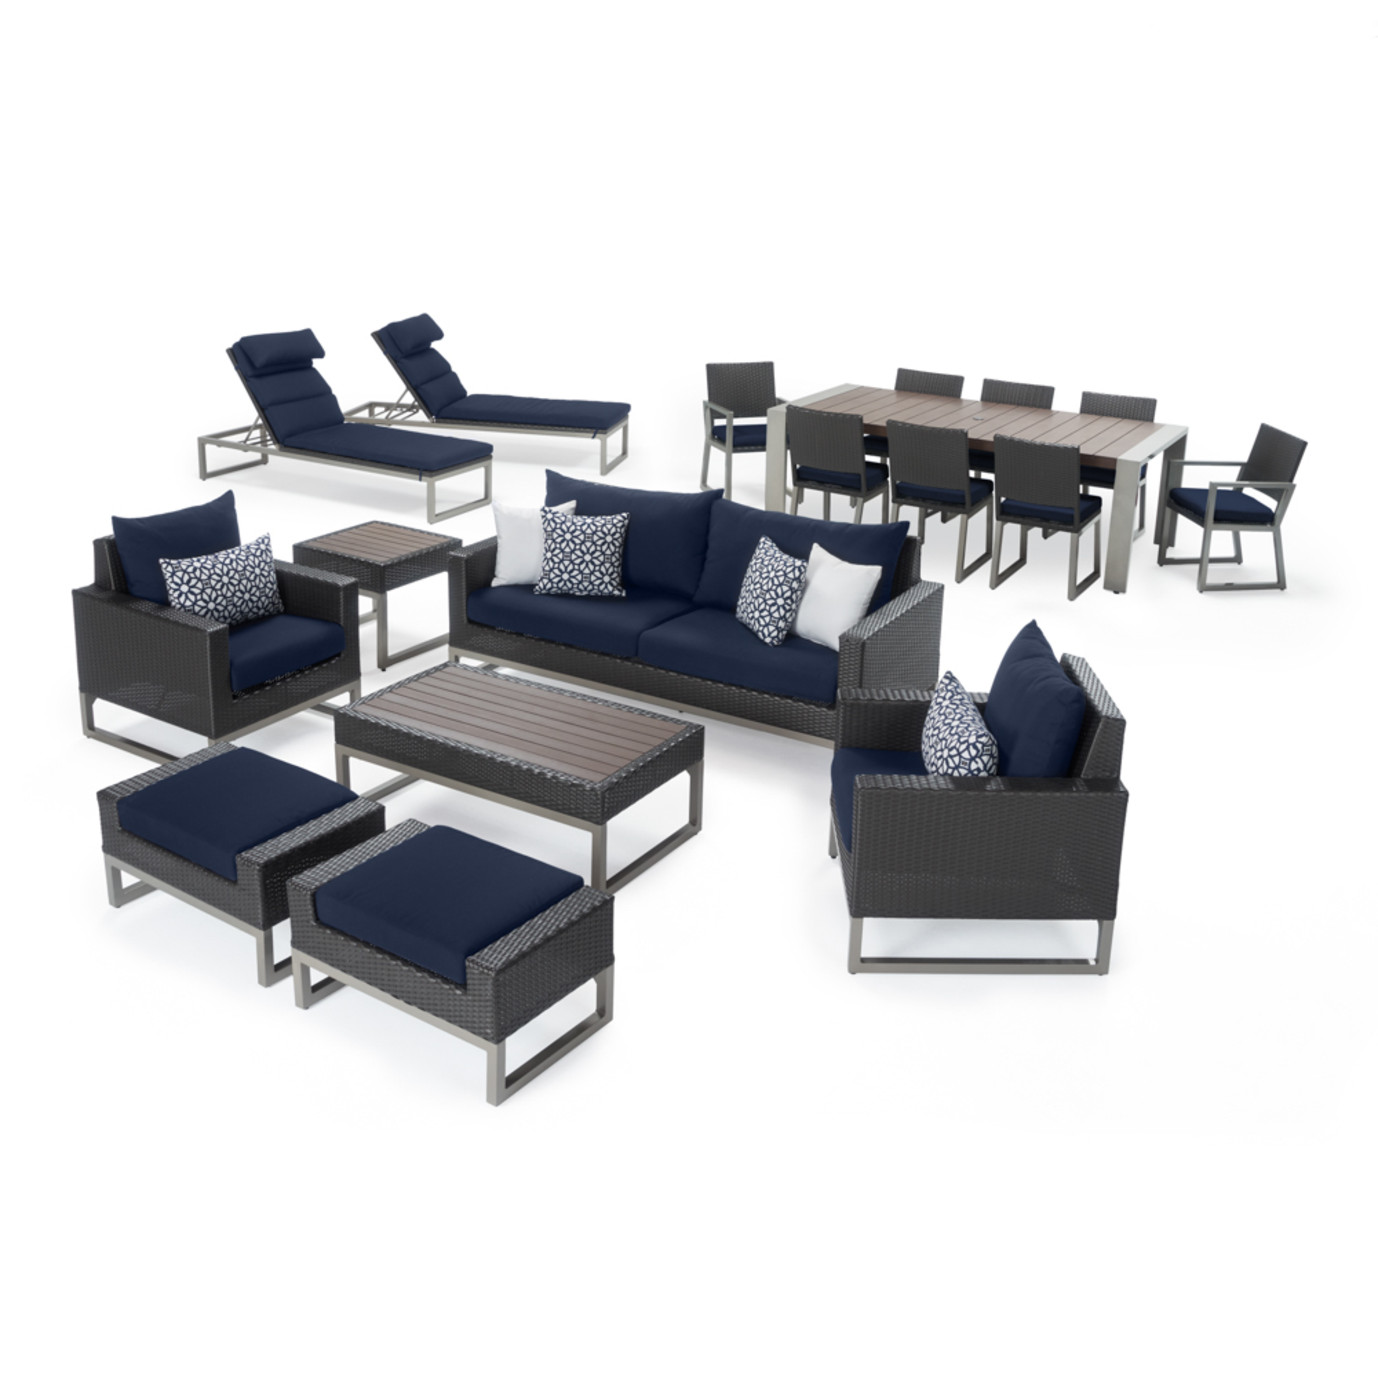 Milo™ Espresso 18 Piece Estate Set - Navy Blue